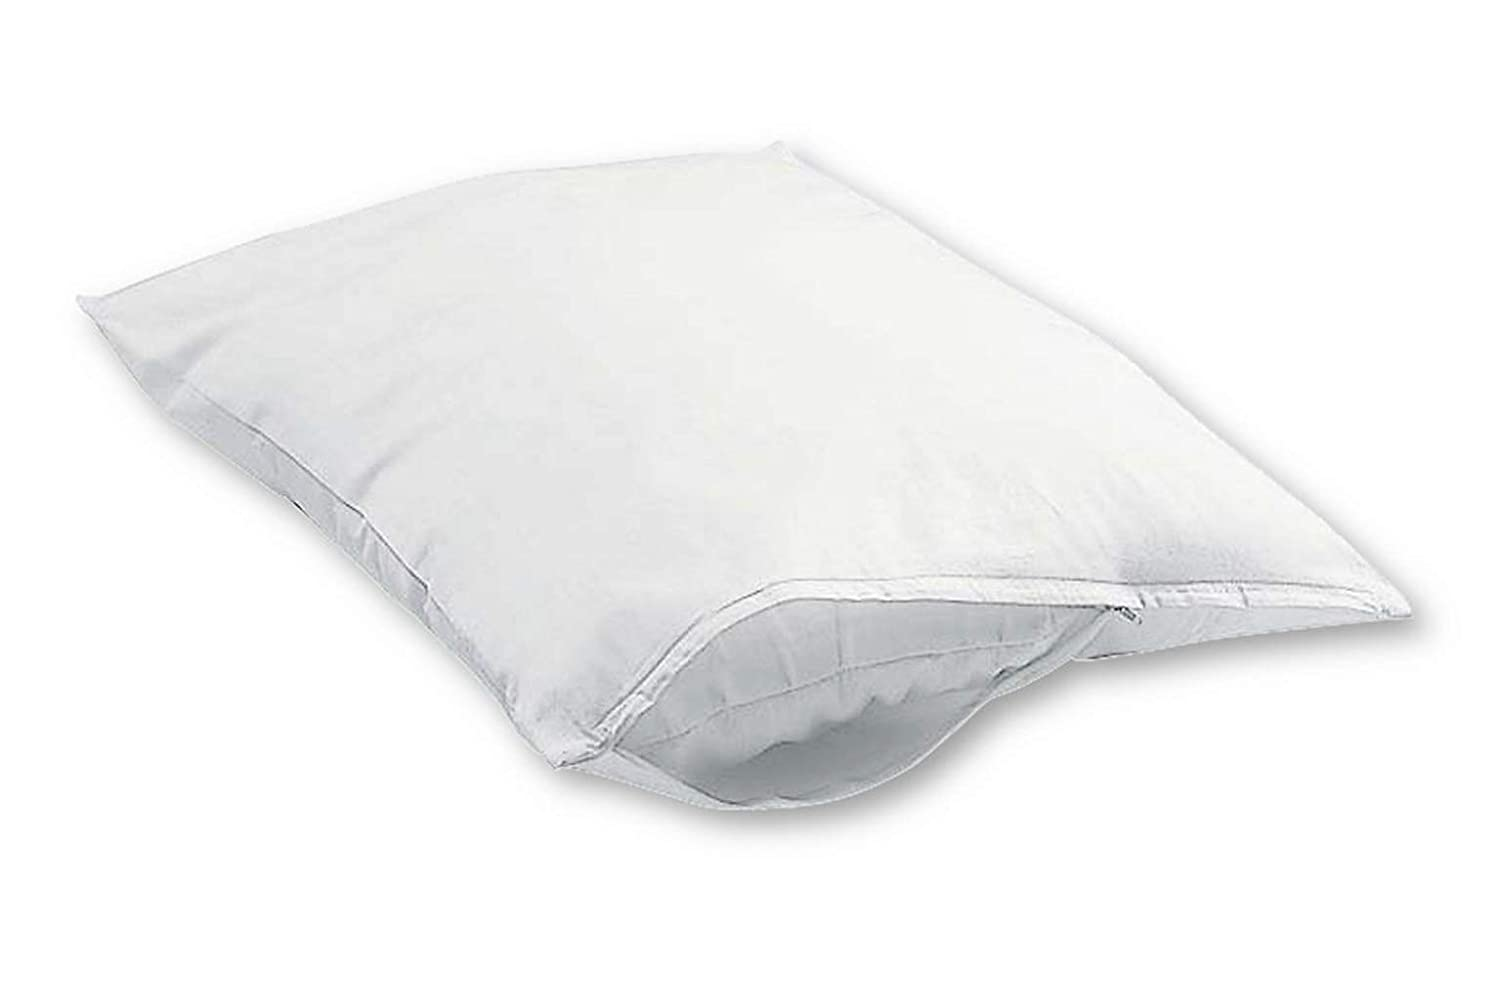 Excellent Art 100% Cotton Zippered Pillow Protector Cover, Set of 2, King T200K